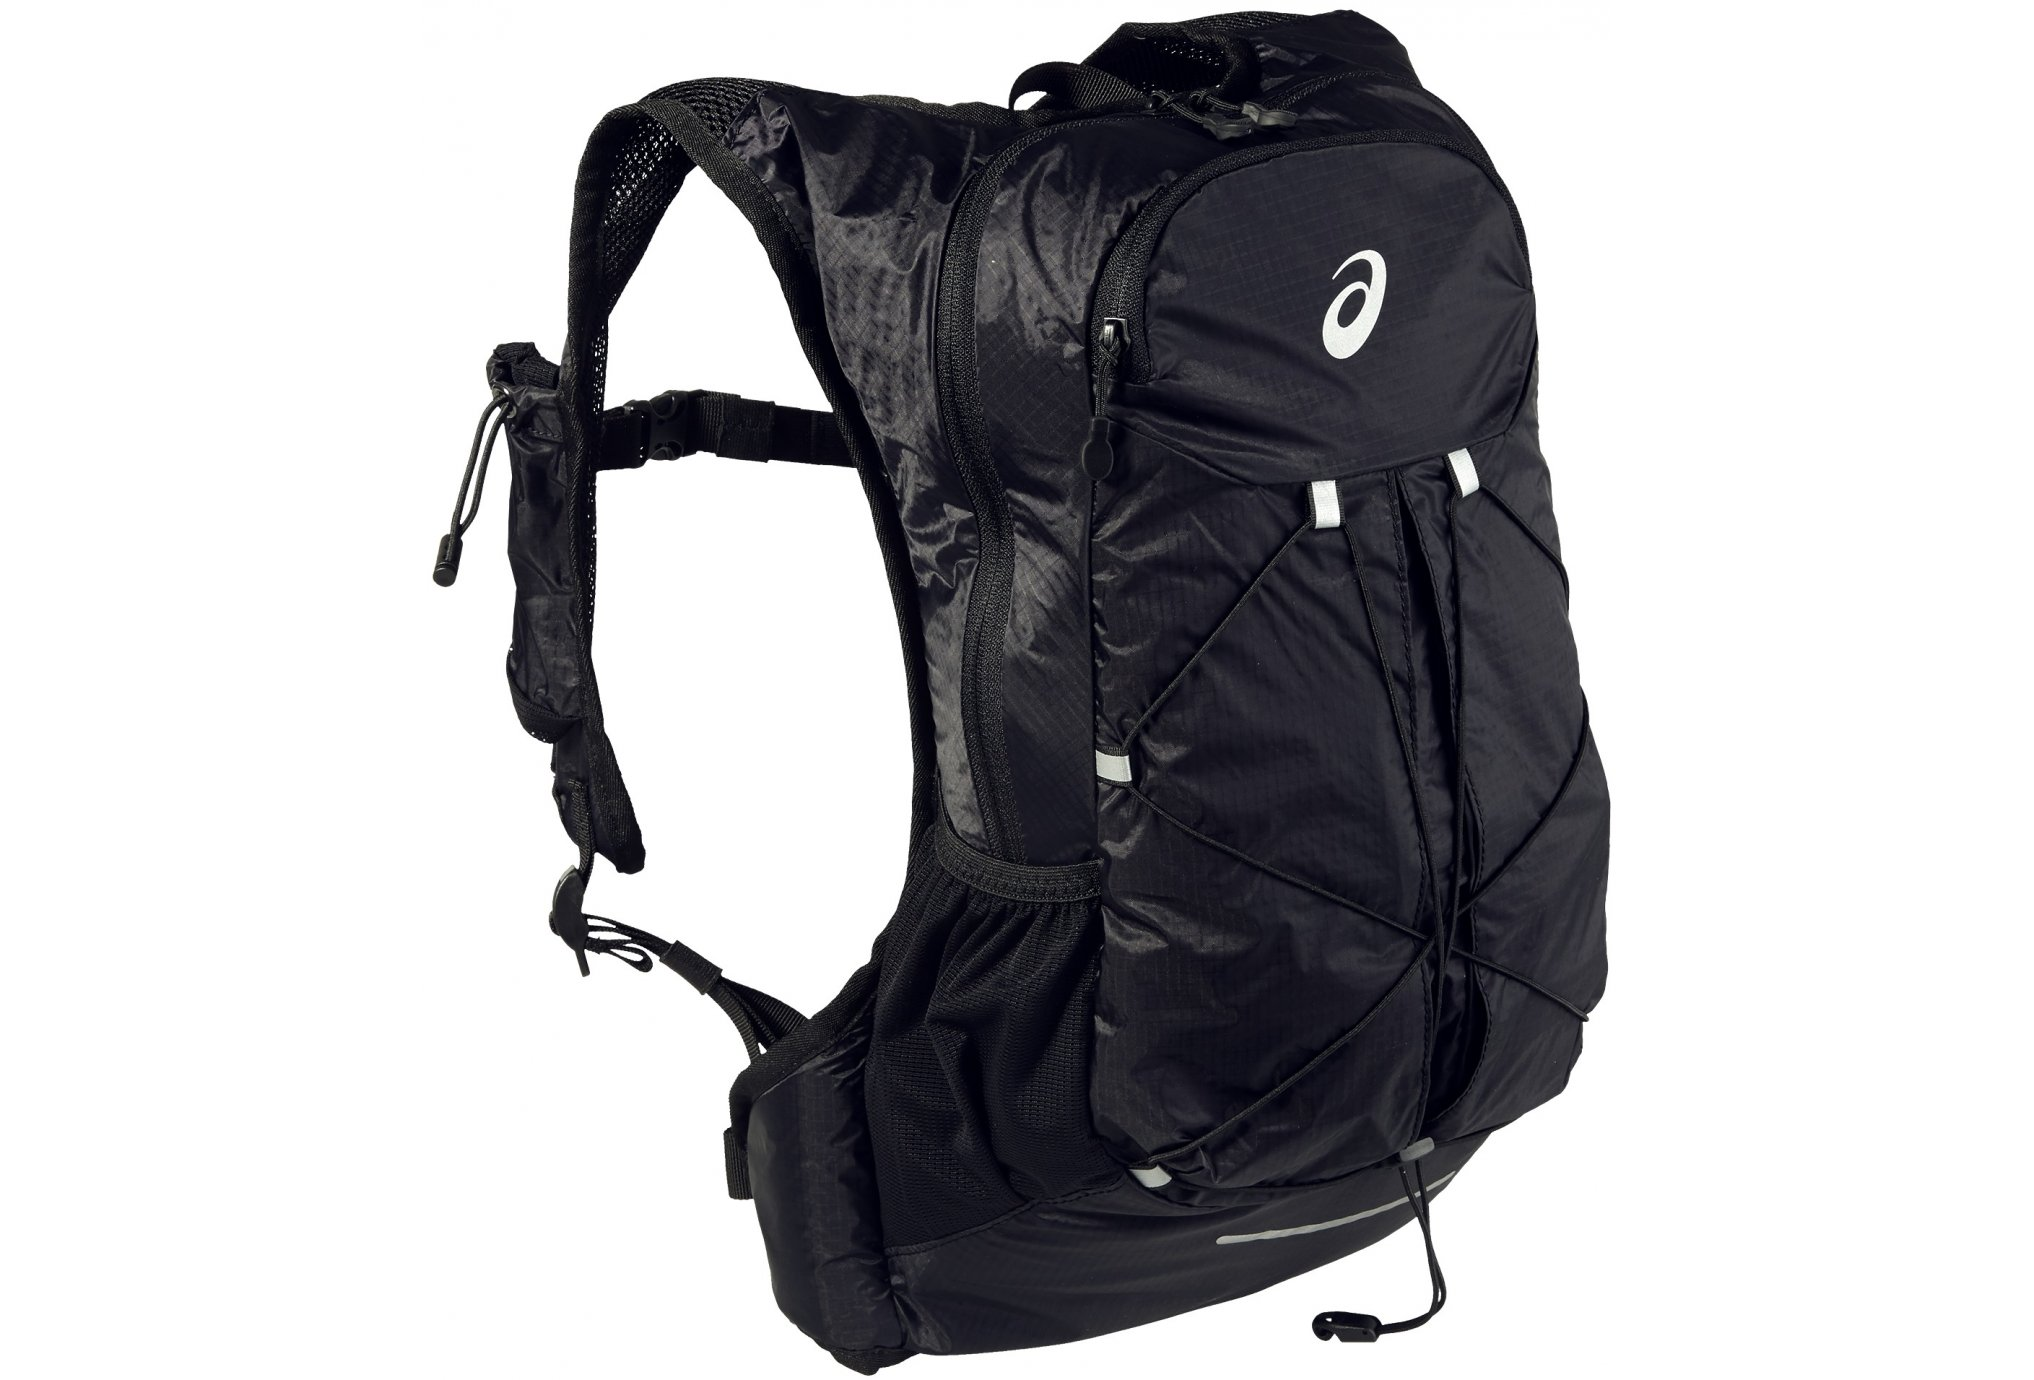 Asics Ligthweight Running Backpack Sac à dos